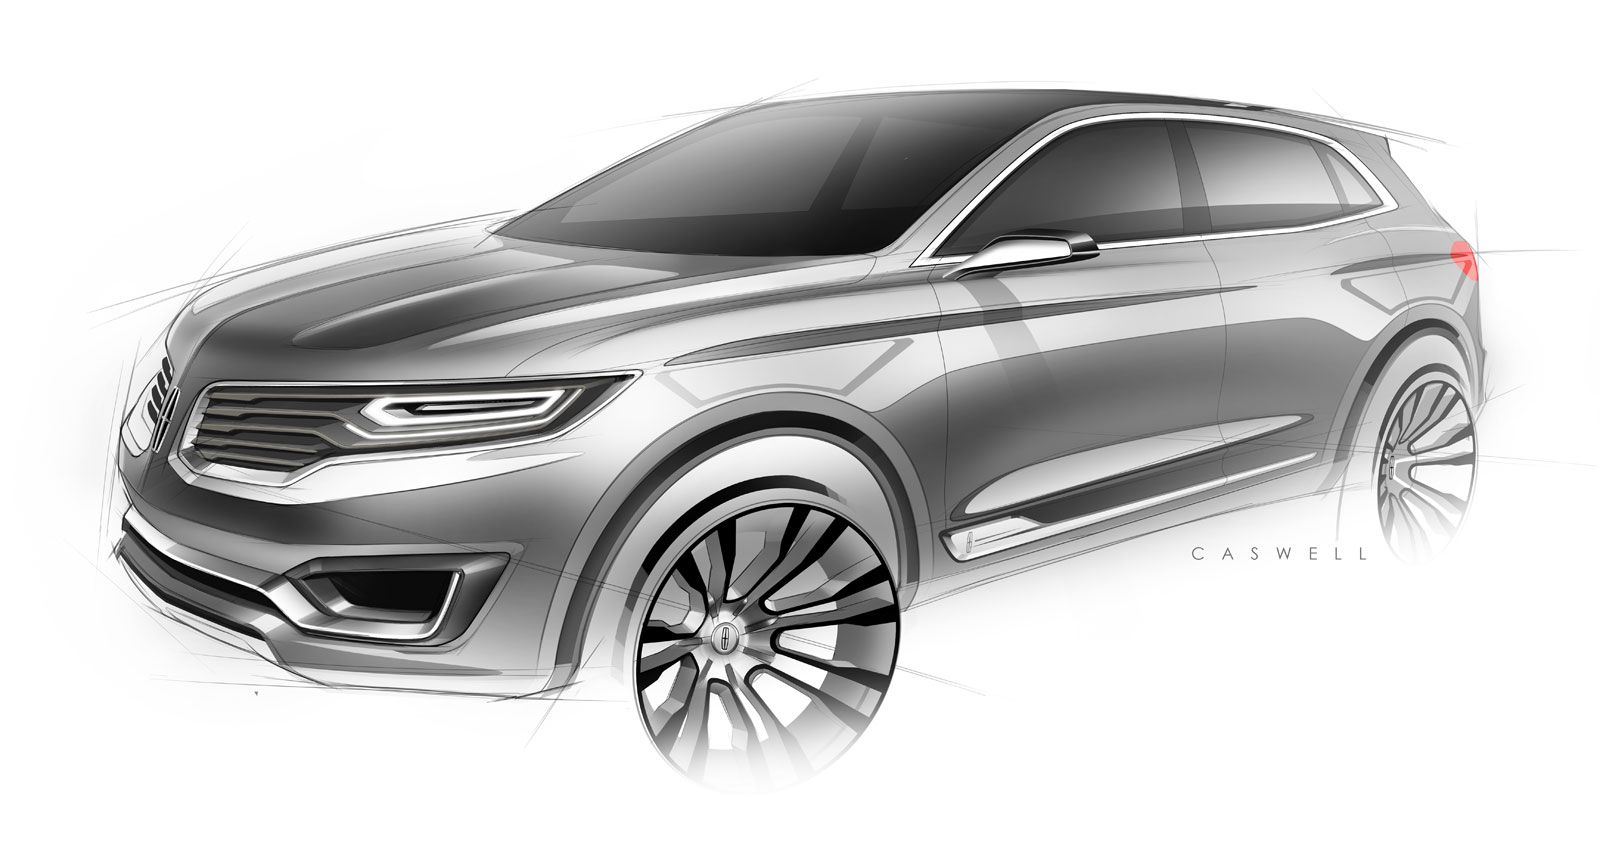 lincoln mkx concept front 3 4 view design sketch hot sketches rh pinterest com